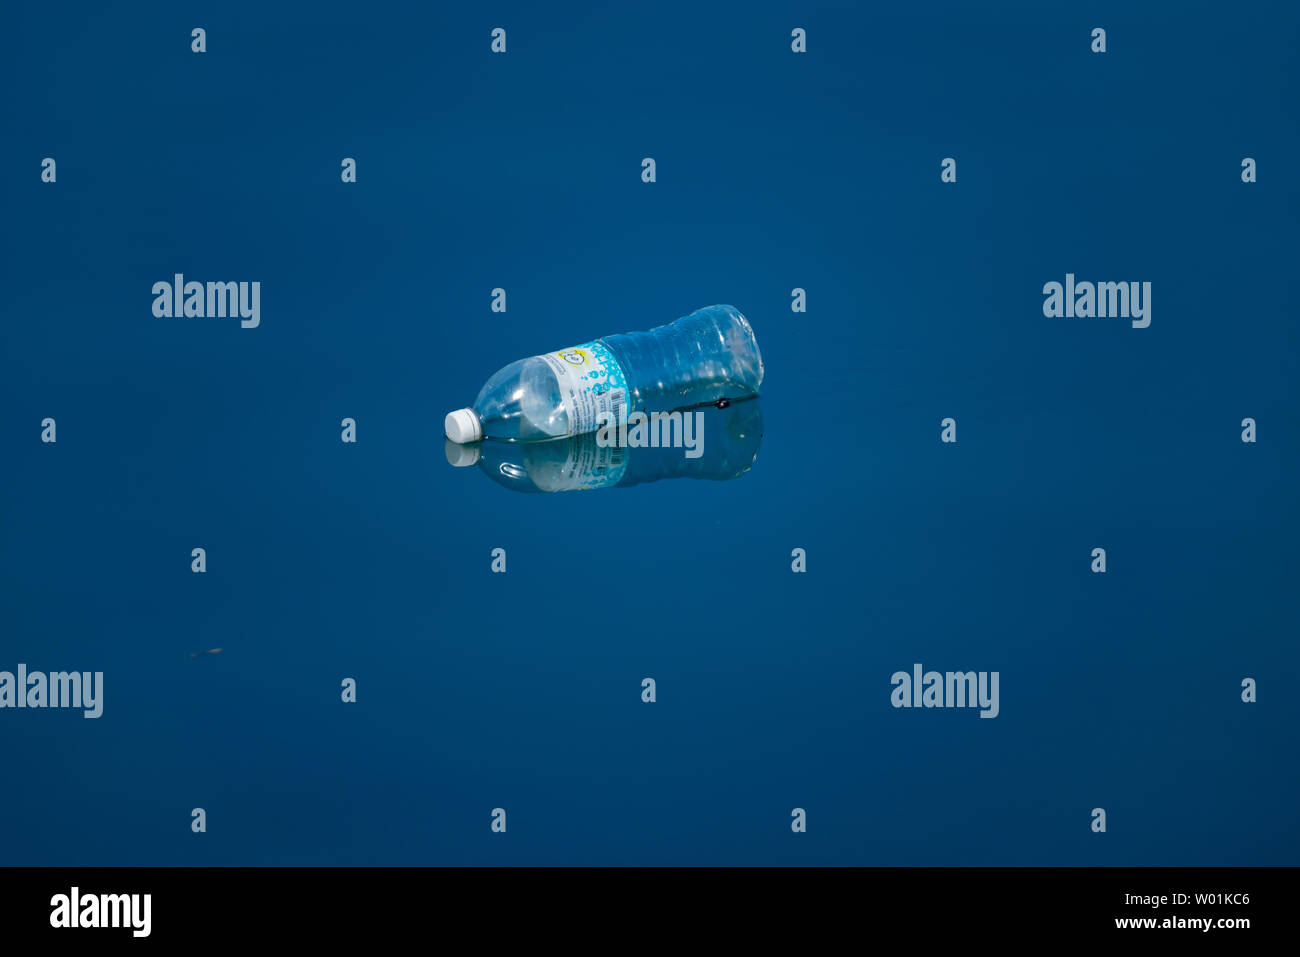 LAHAD DATU MALAYSIA - MAY 17 2019; Sea trash, environmental hazard of one plastic bottle carelessly thrown in the water - Stock Image